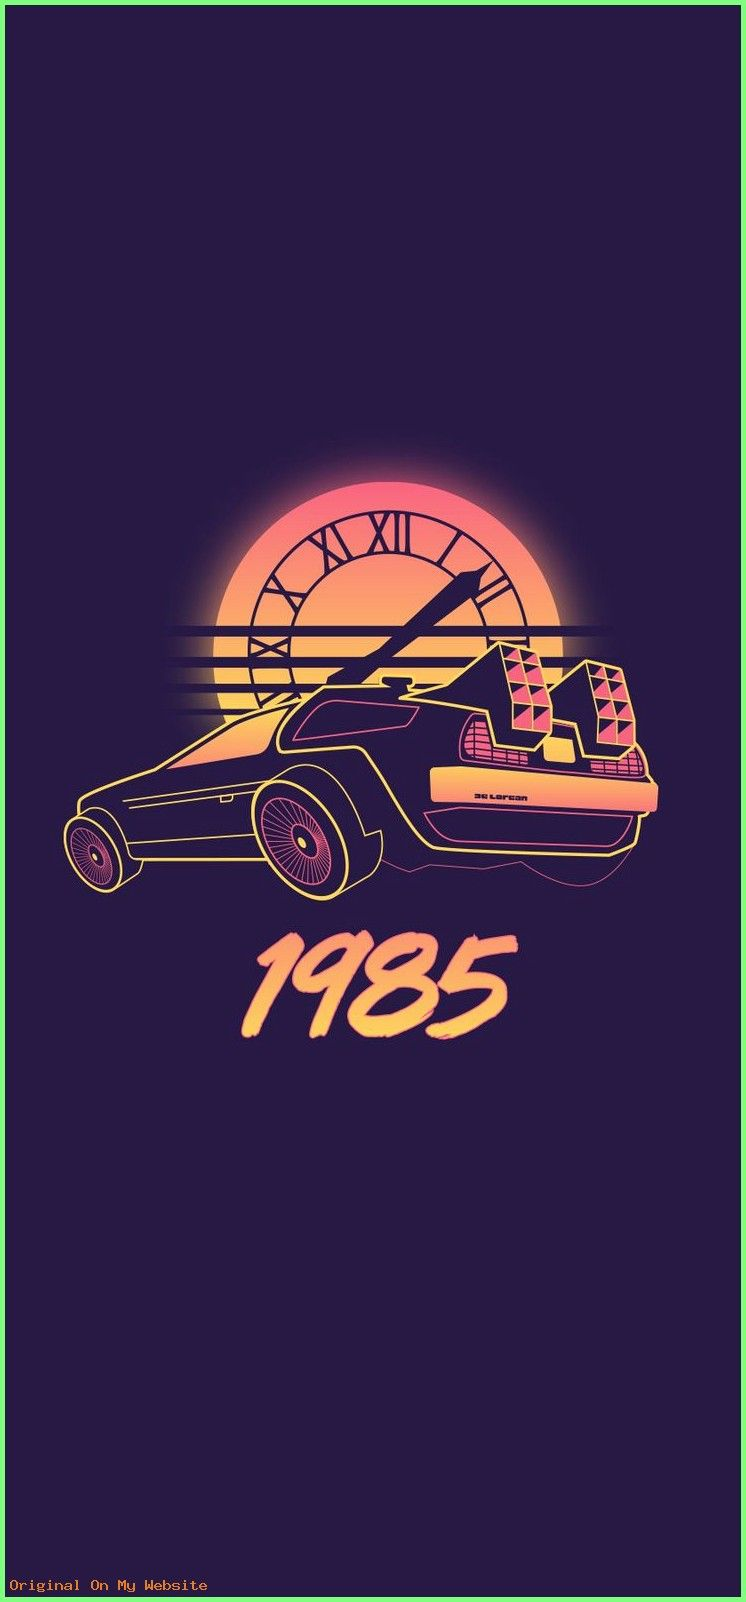 Wallpaper Backgrounds Vintage Back To The Future Retro Wave